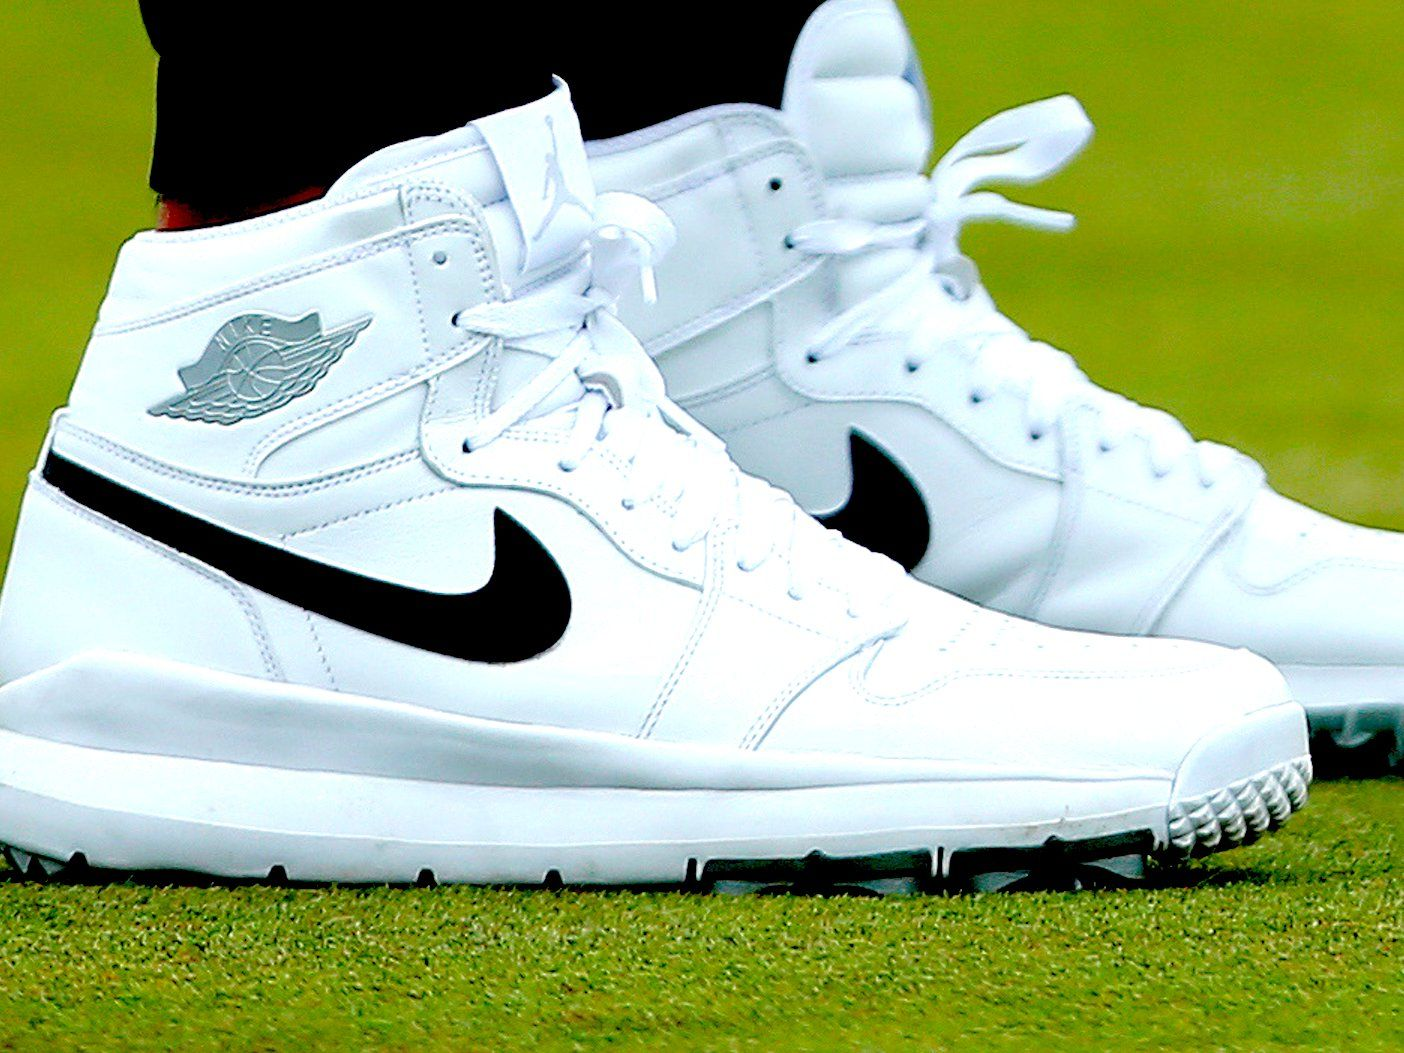 Jason Day's Golf Shoes for the British